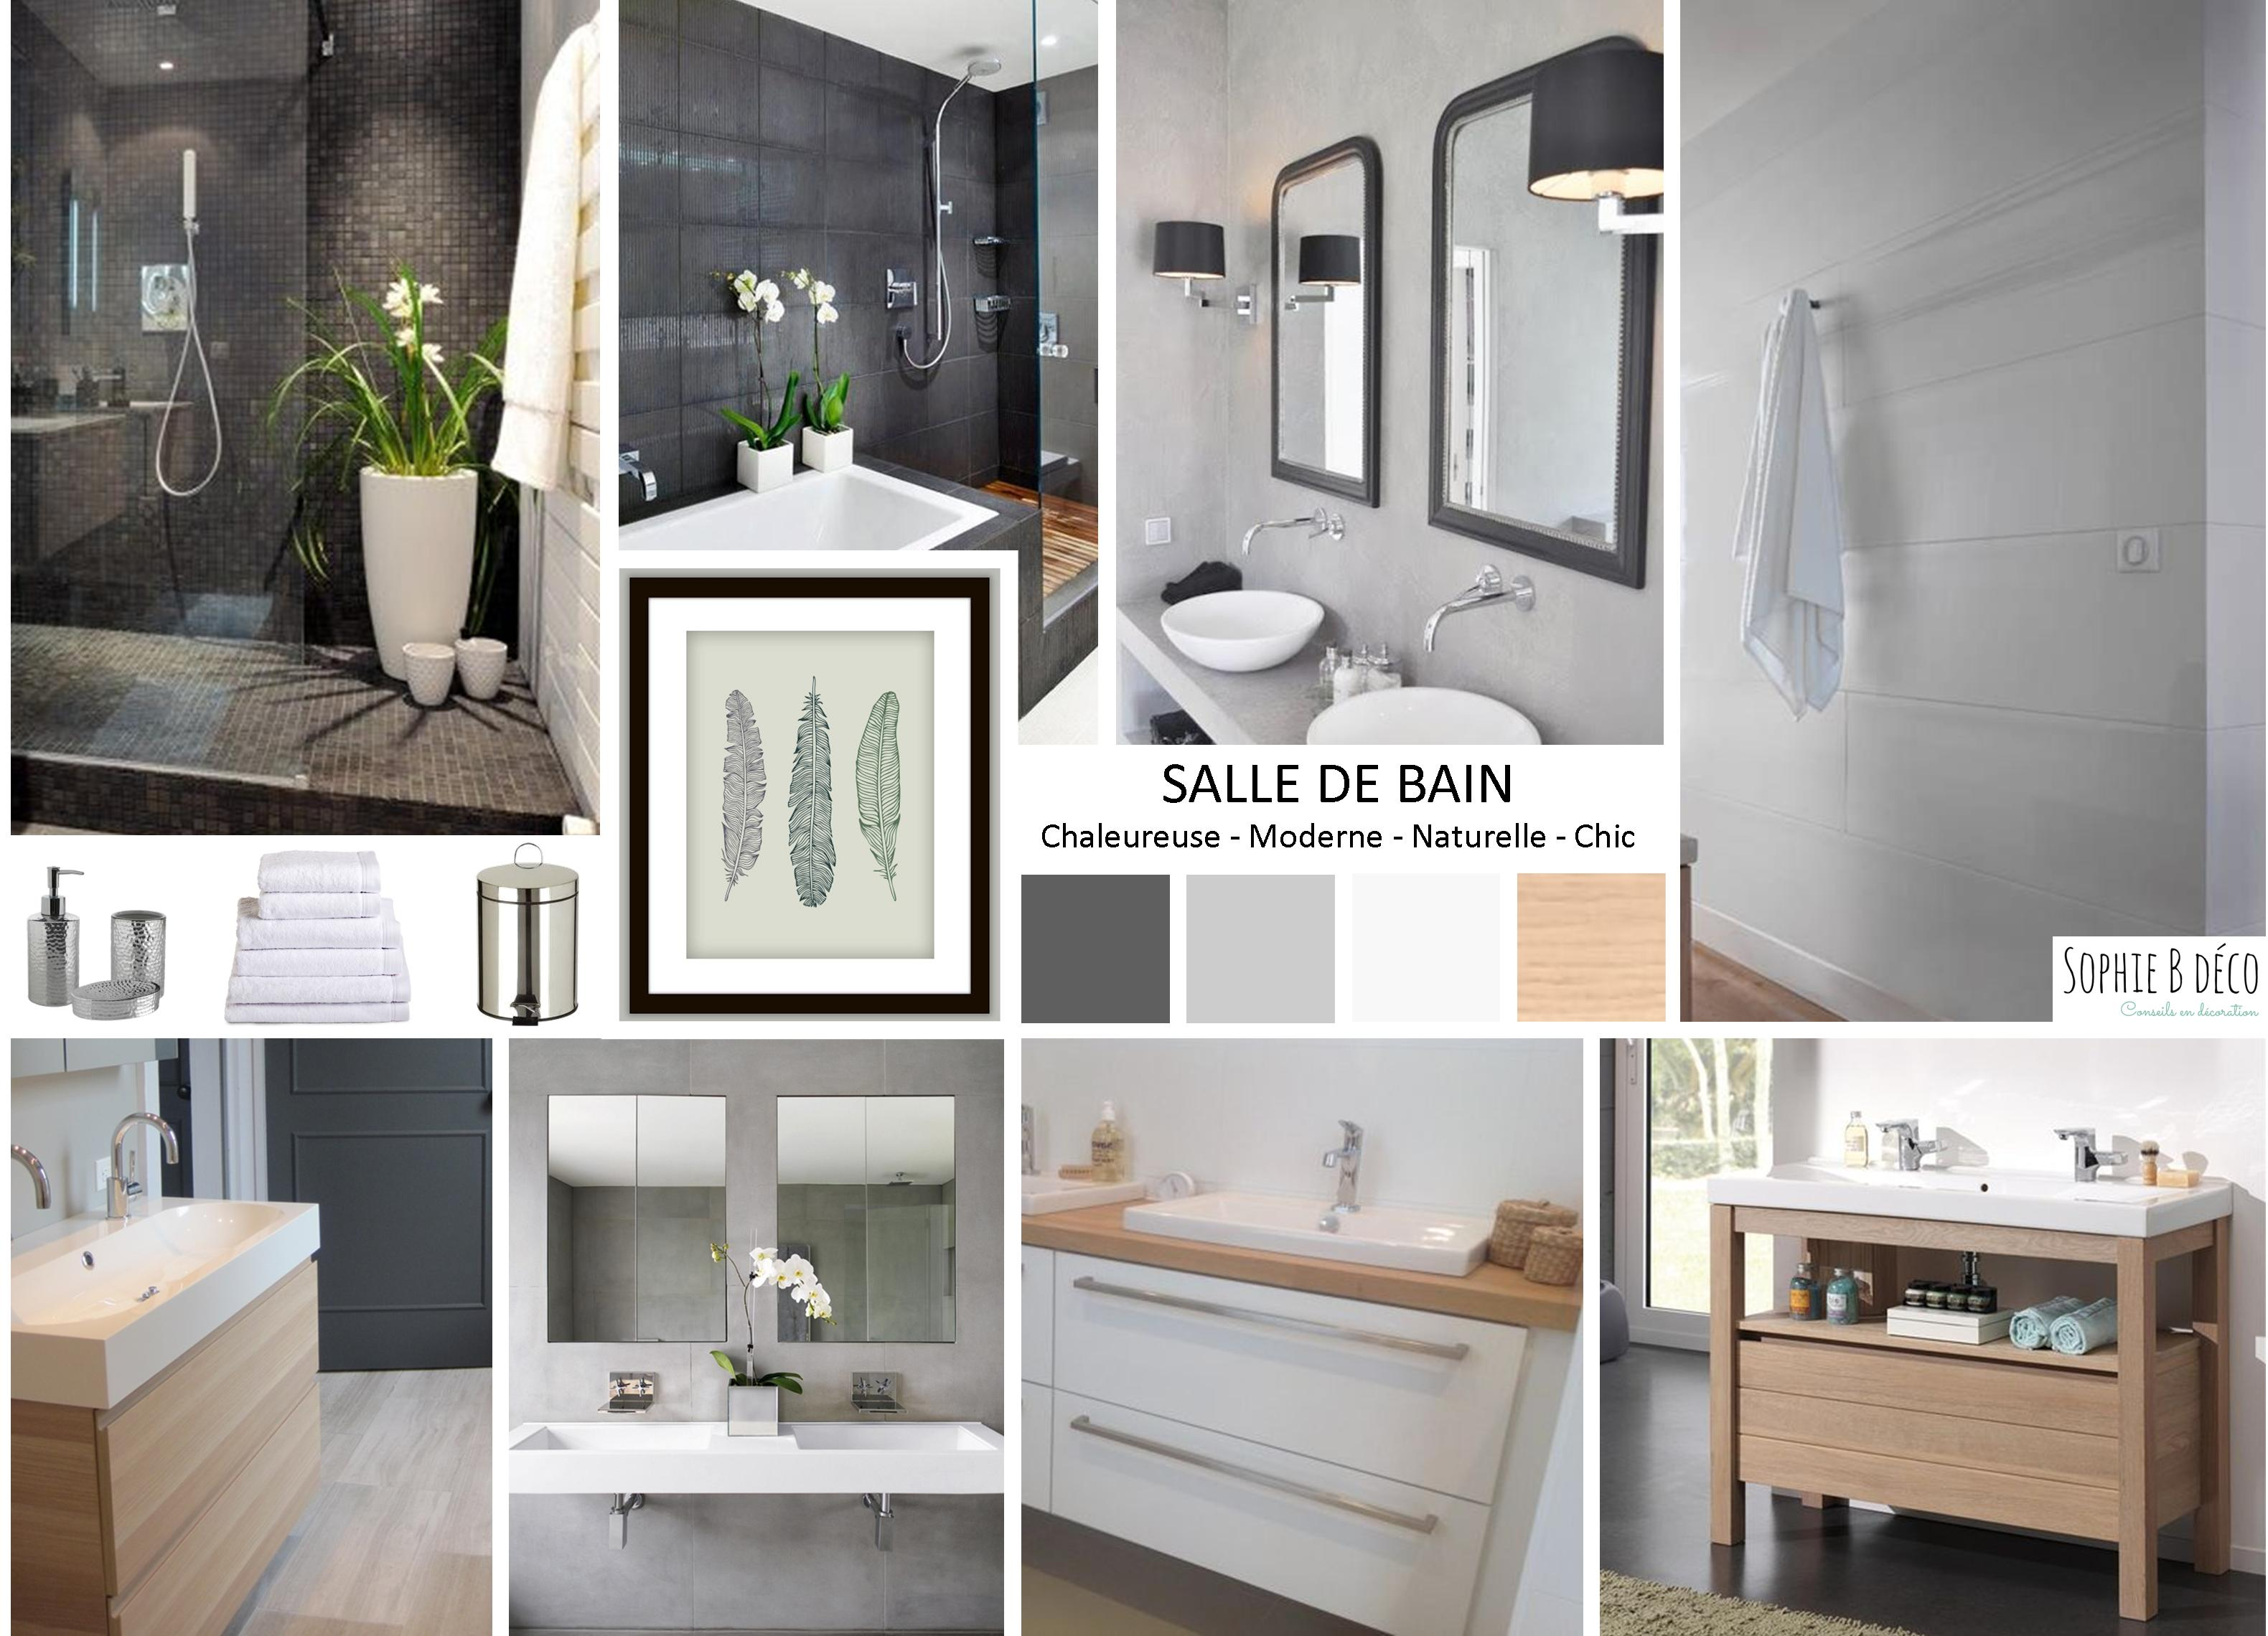 salle de bain r novation en gris blanc et bois. Black Bedroom Furniture Sets. Home Design Ideas